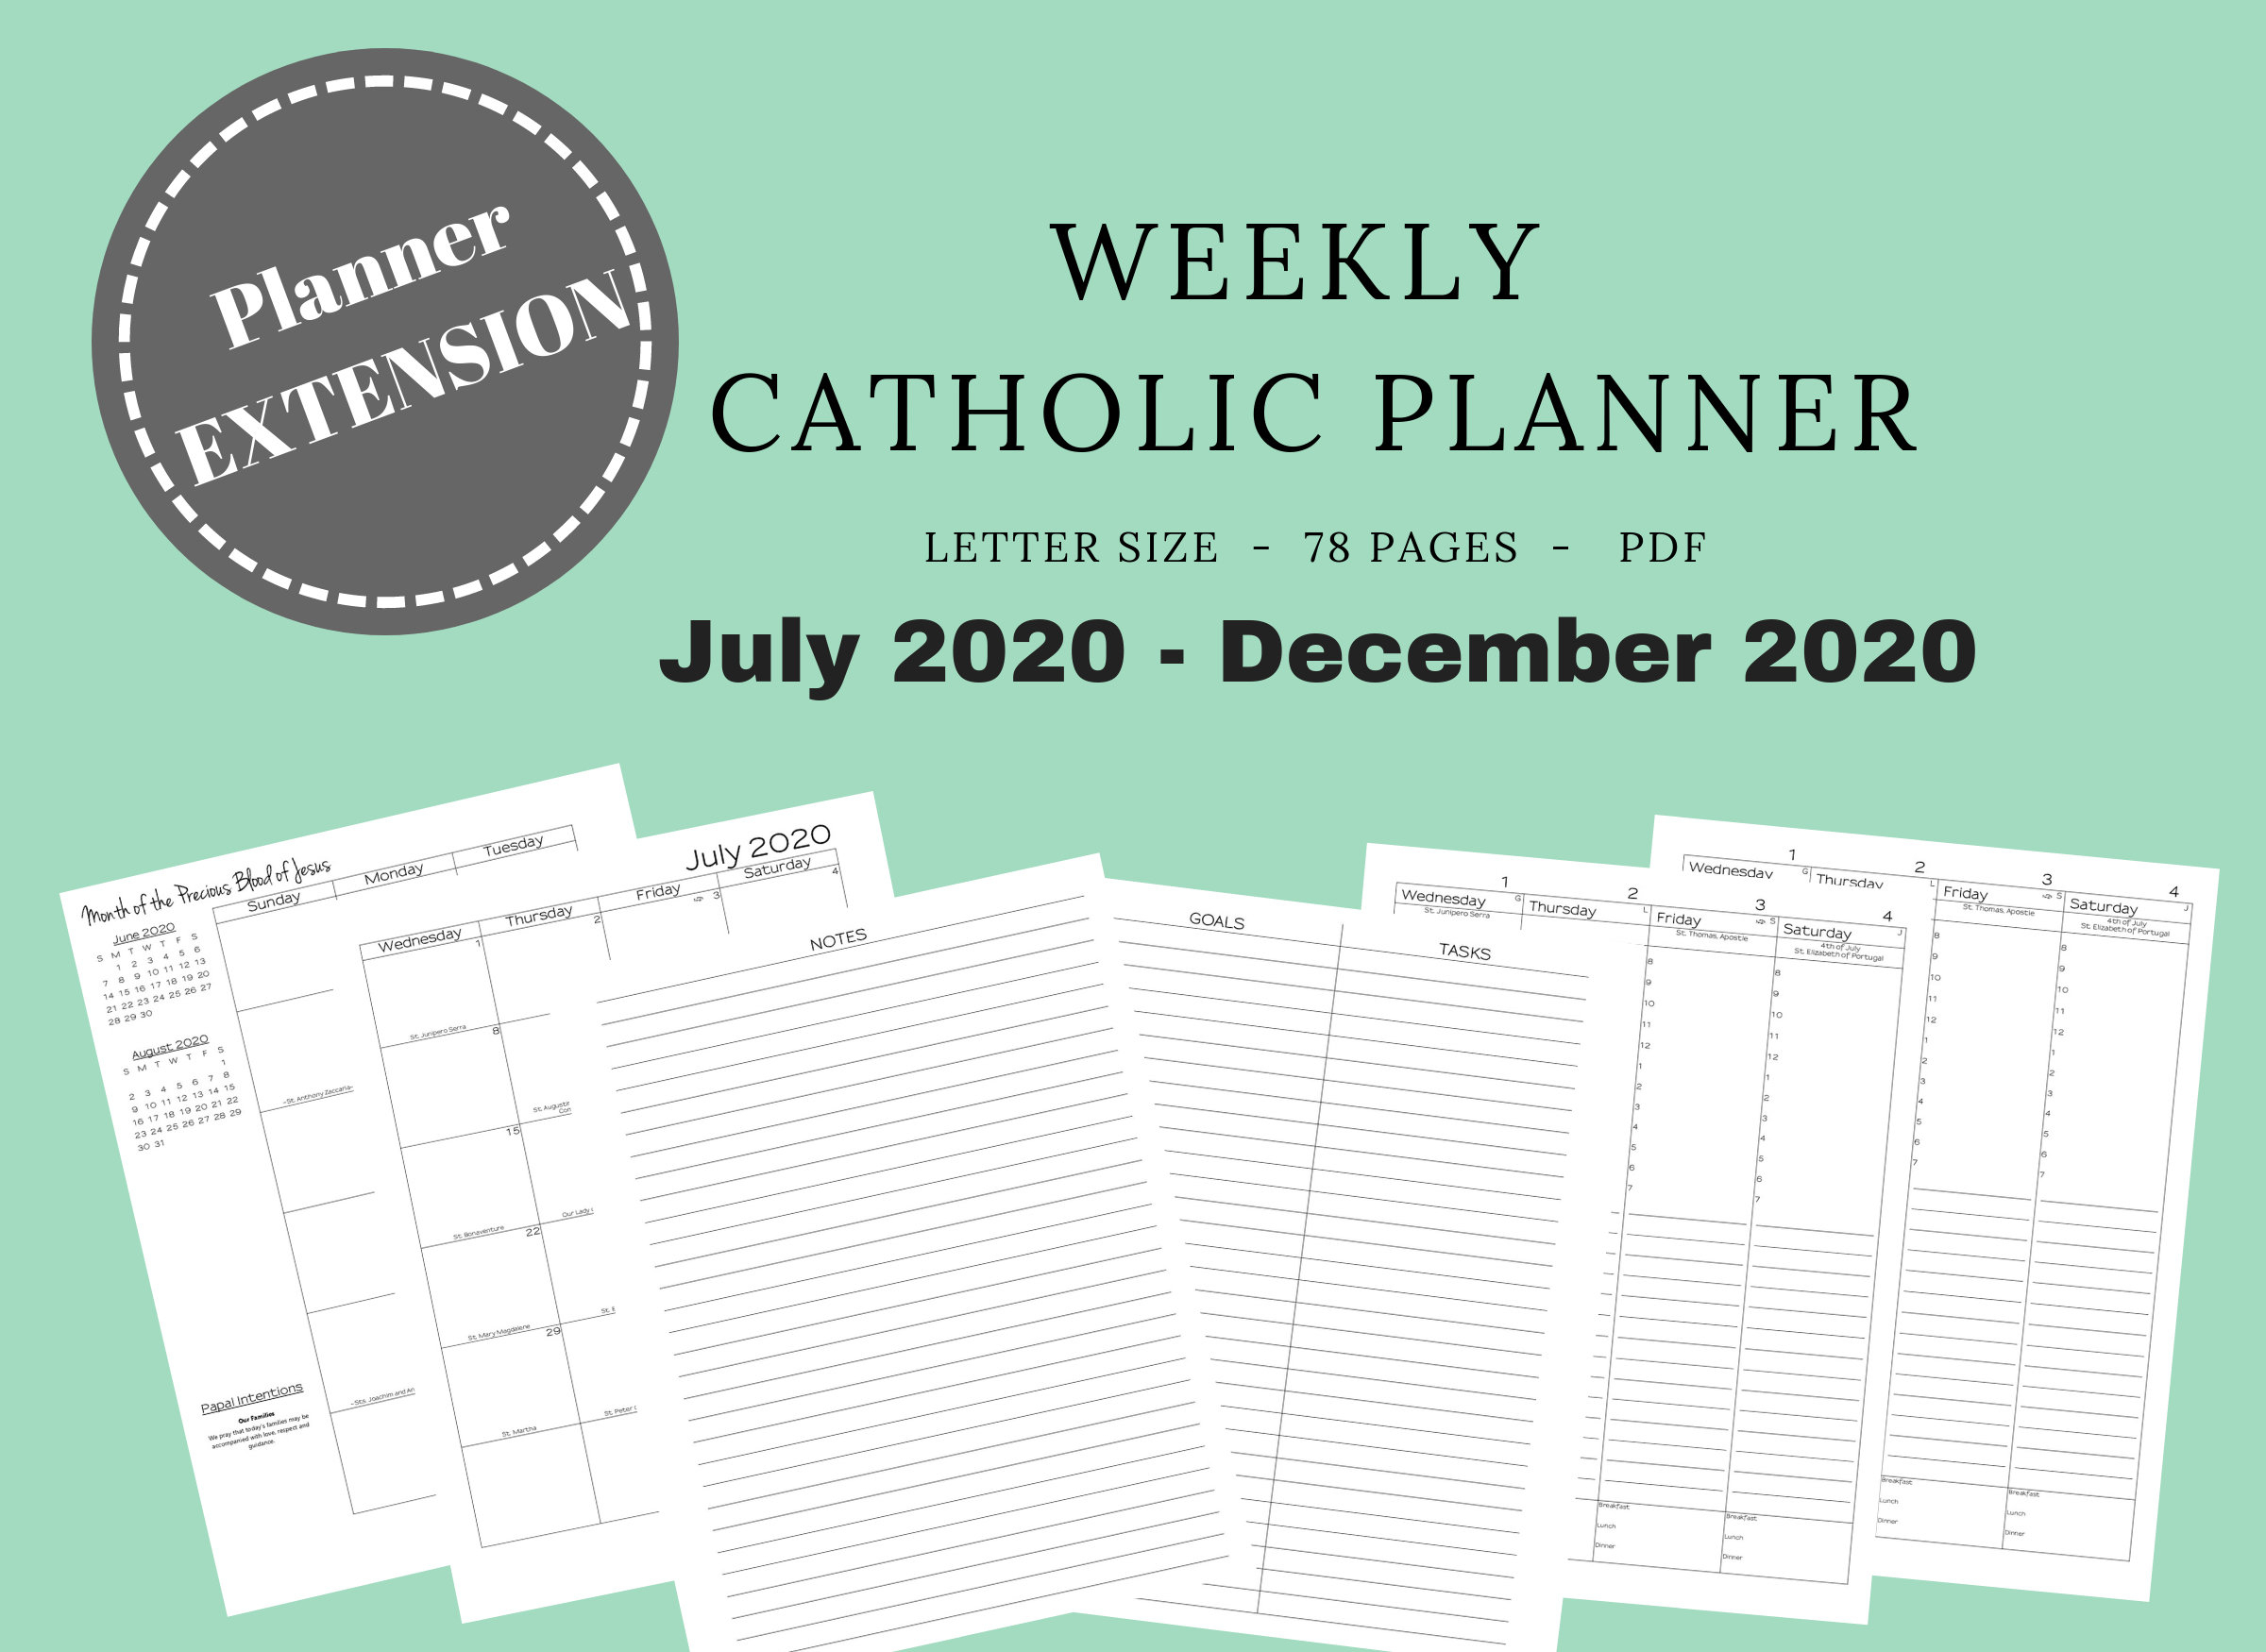 2020 Catholic Planner *extension* Weekly Printable: Daily Planner / Weekly  Calendar / Liturgical Planner / Printable Catholic Planner